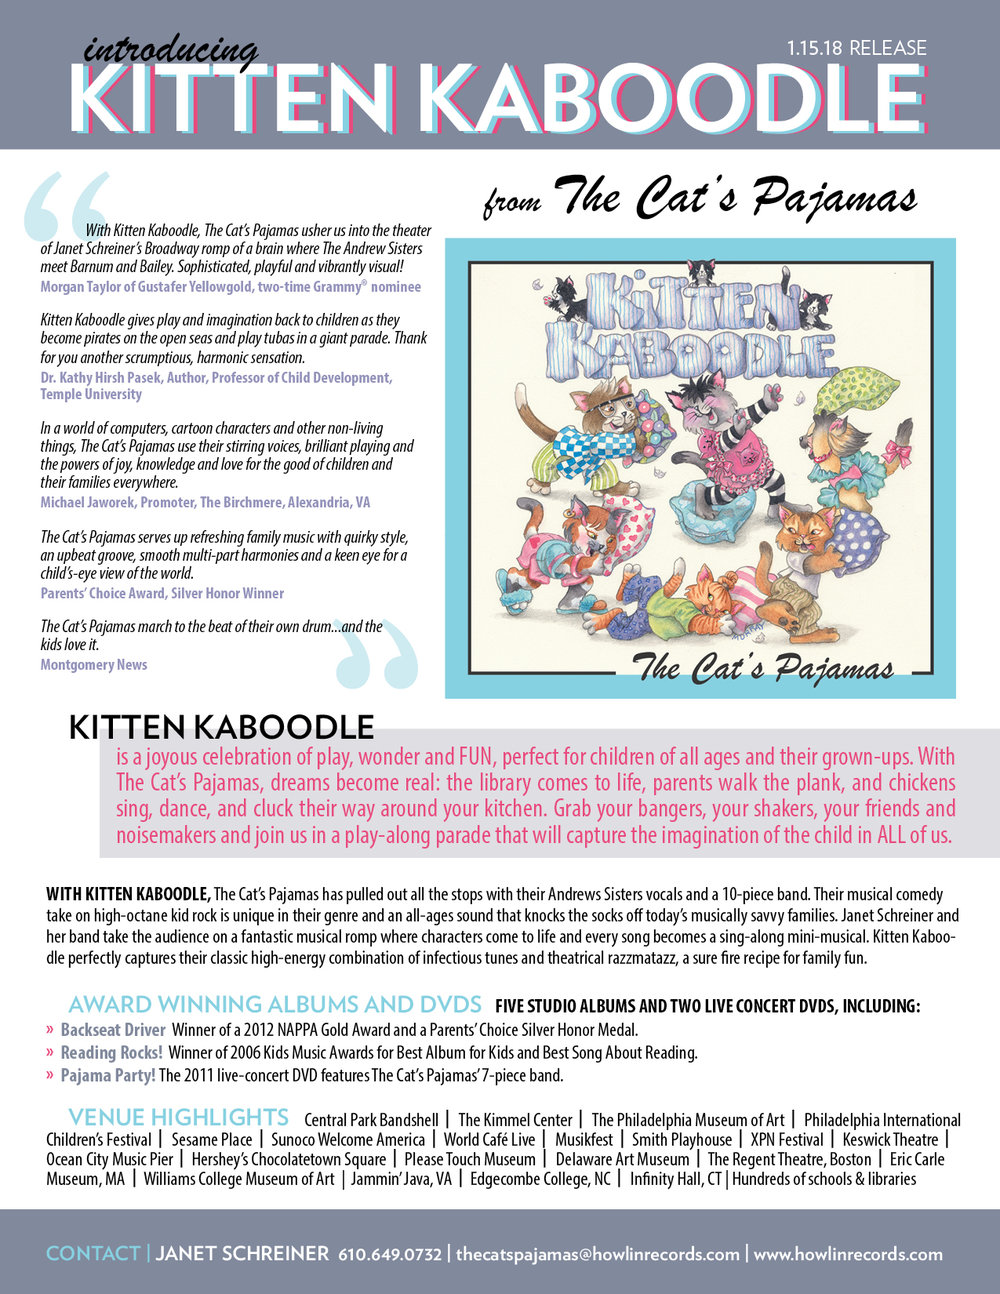 KITTEN_KABOODLE_ANNOUNCMENT_WEB.jpg